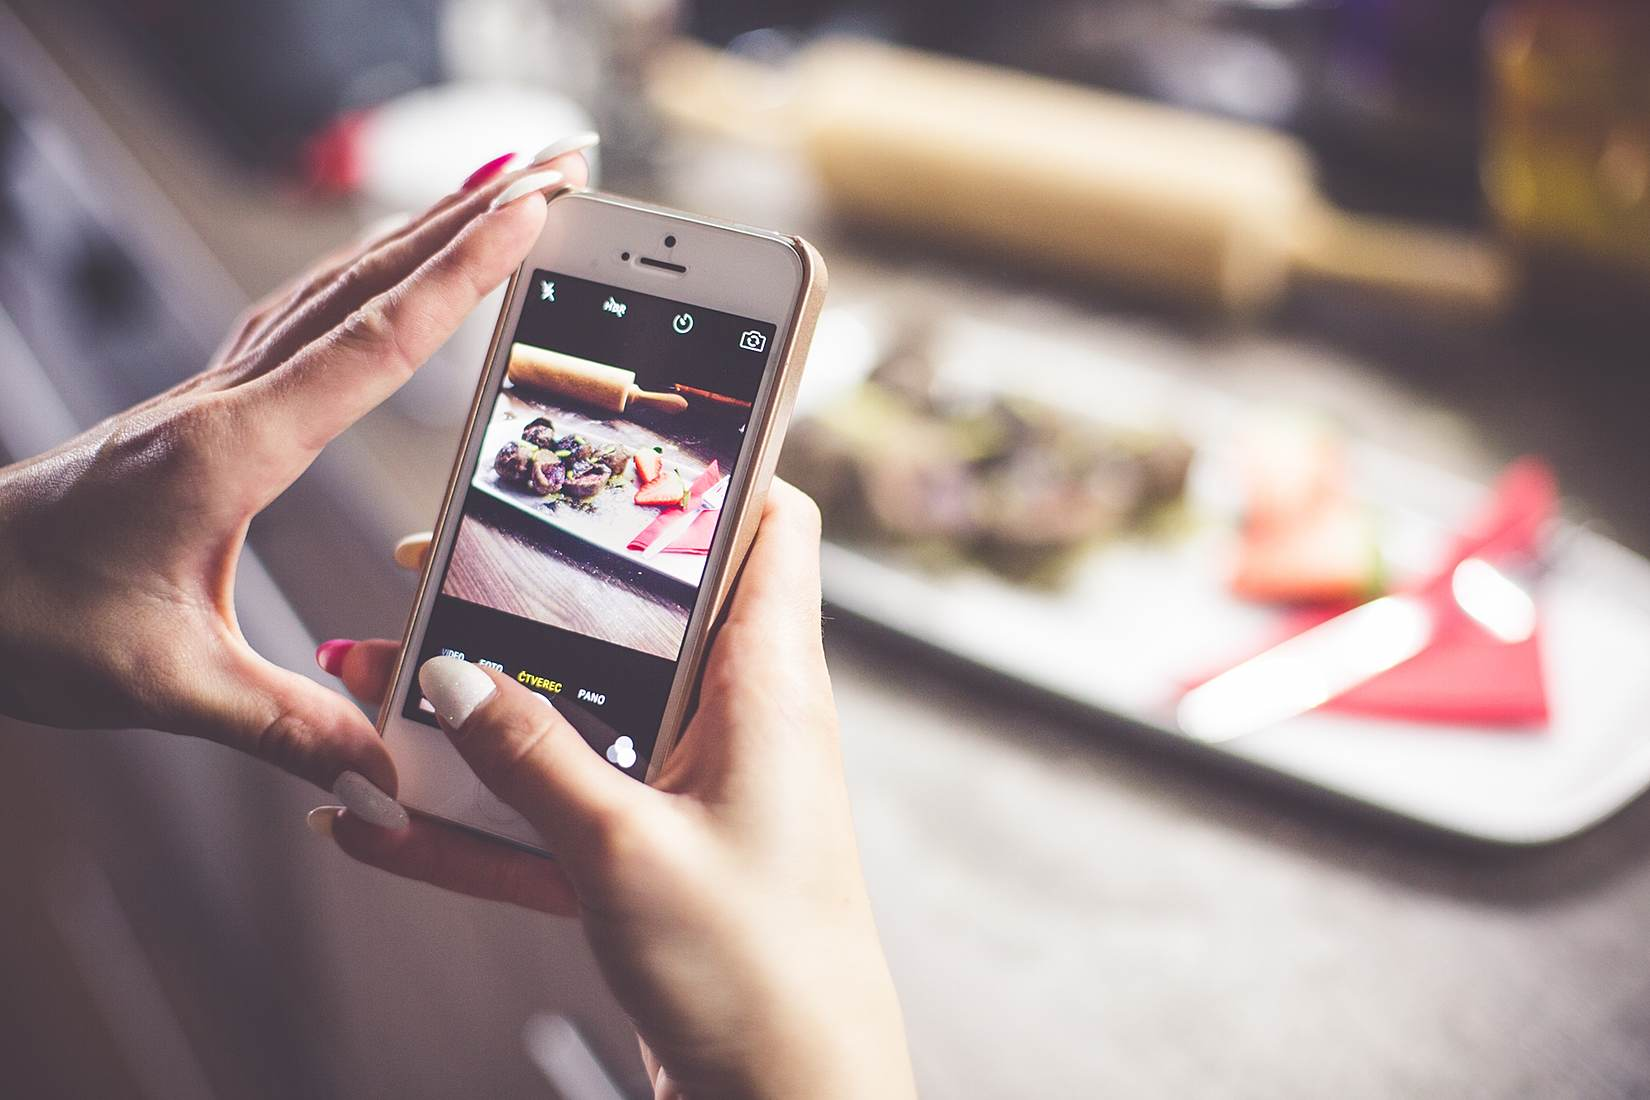 How food and dining apps can use Leanplum's Linked Data feature to engage users